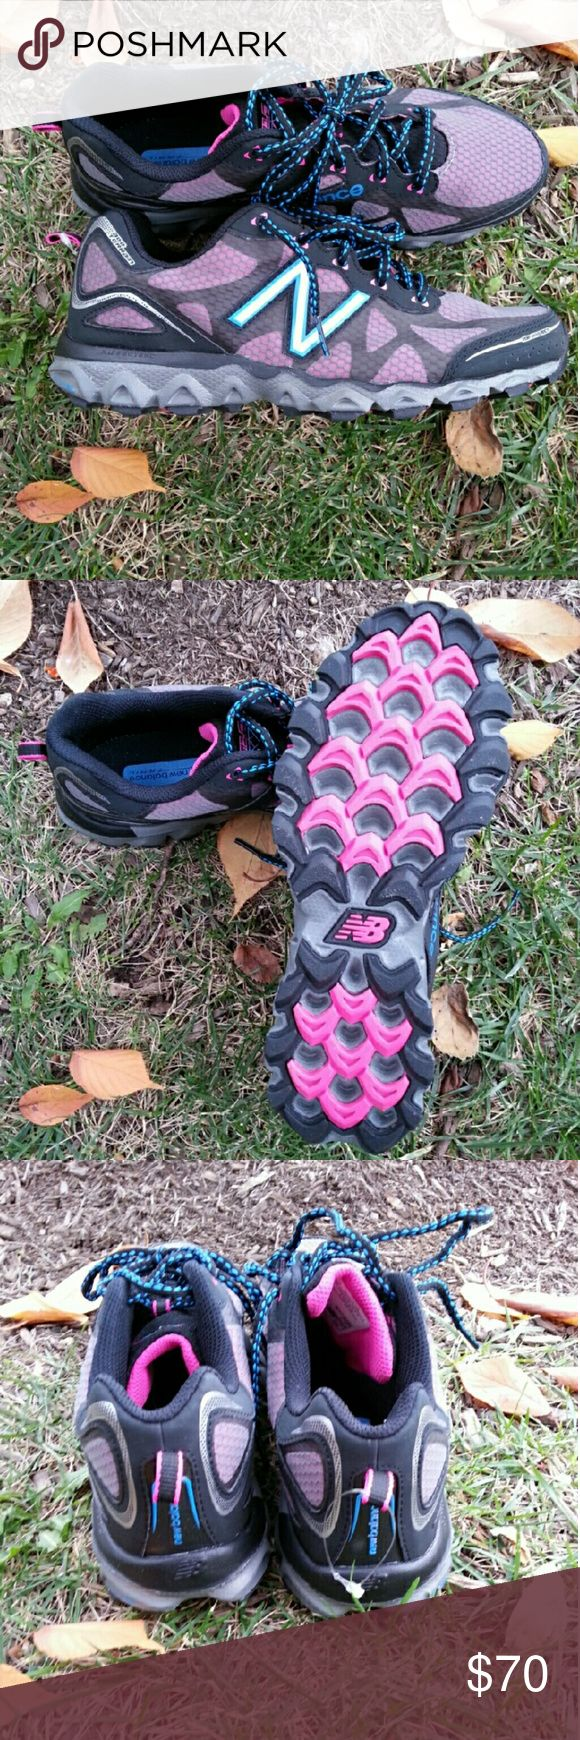 💢FIRM💢New Balance All Terrain Trail Sneakers Brand New  WHEN YOU ARE MAKING AN OFFER PLEASE REMEMBER POSHMARK TAKES 20% New Balance Shoes Sneakers